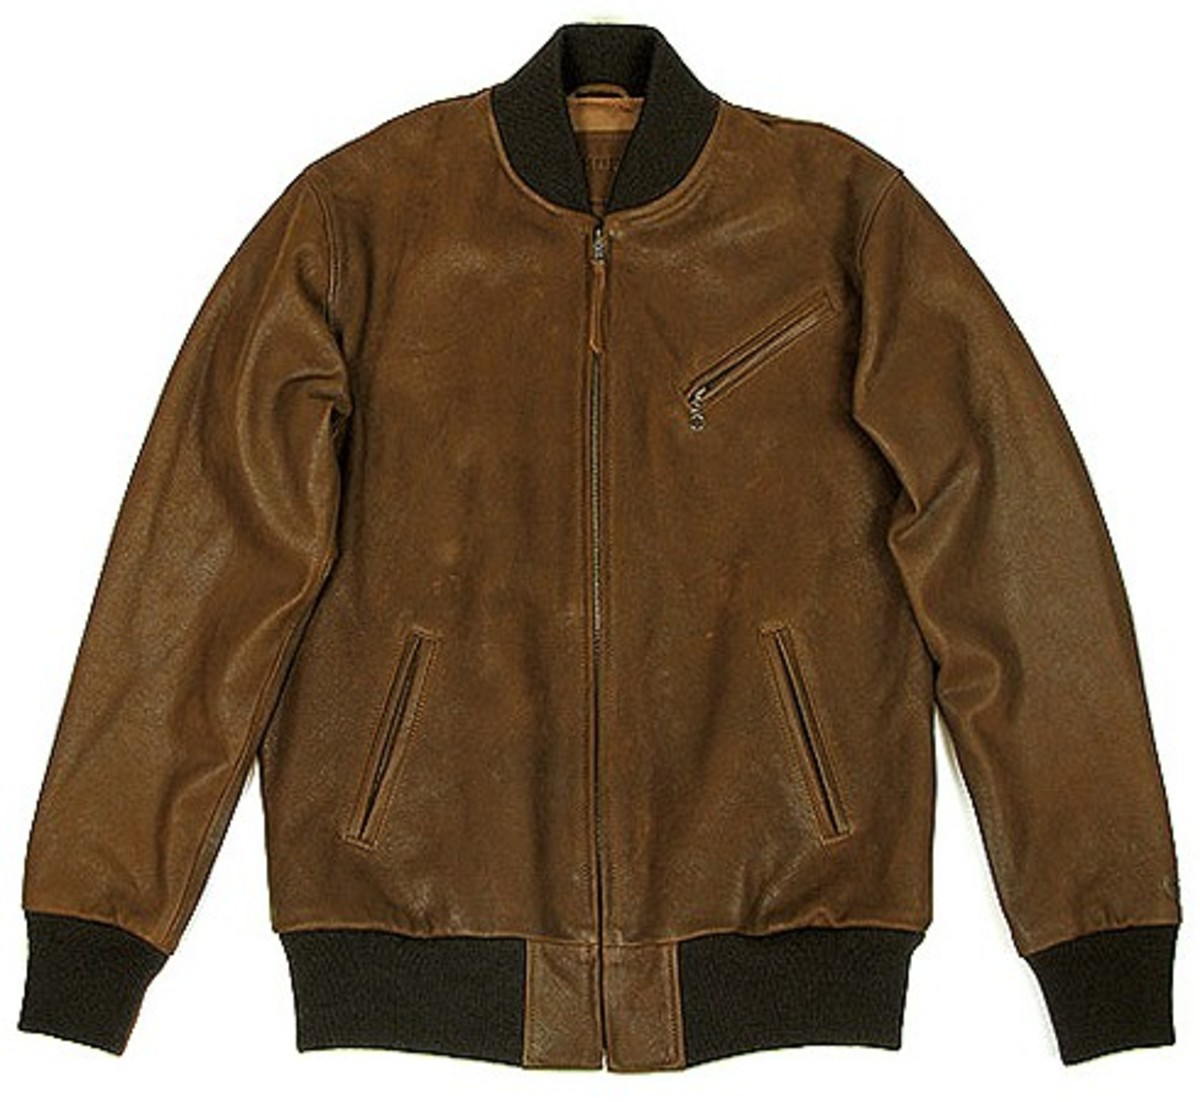 HUF - Leather Bomber Jacket